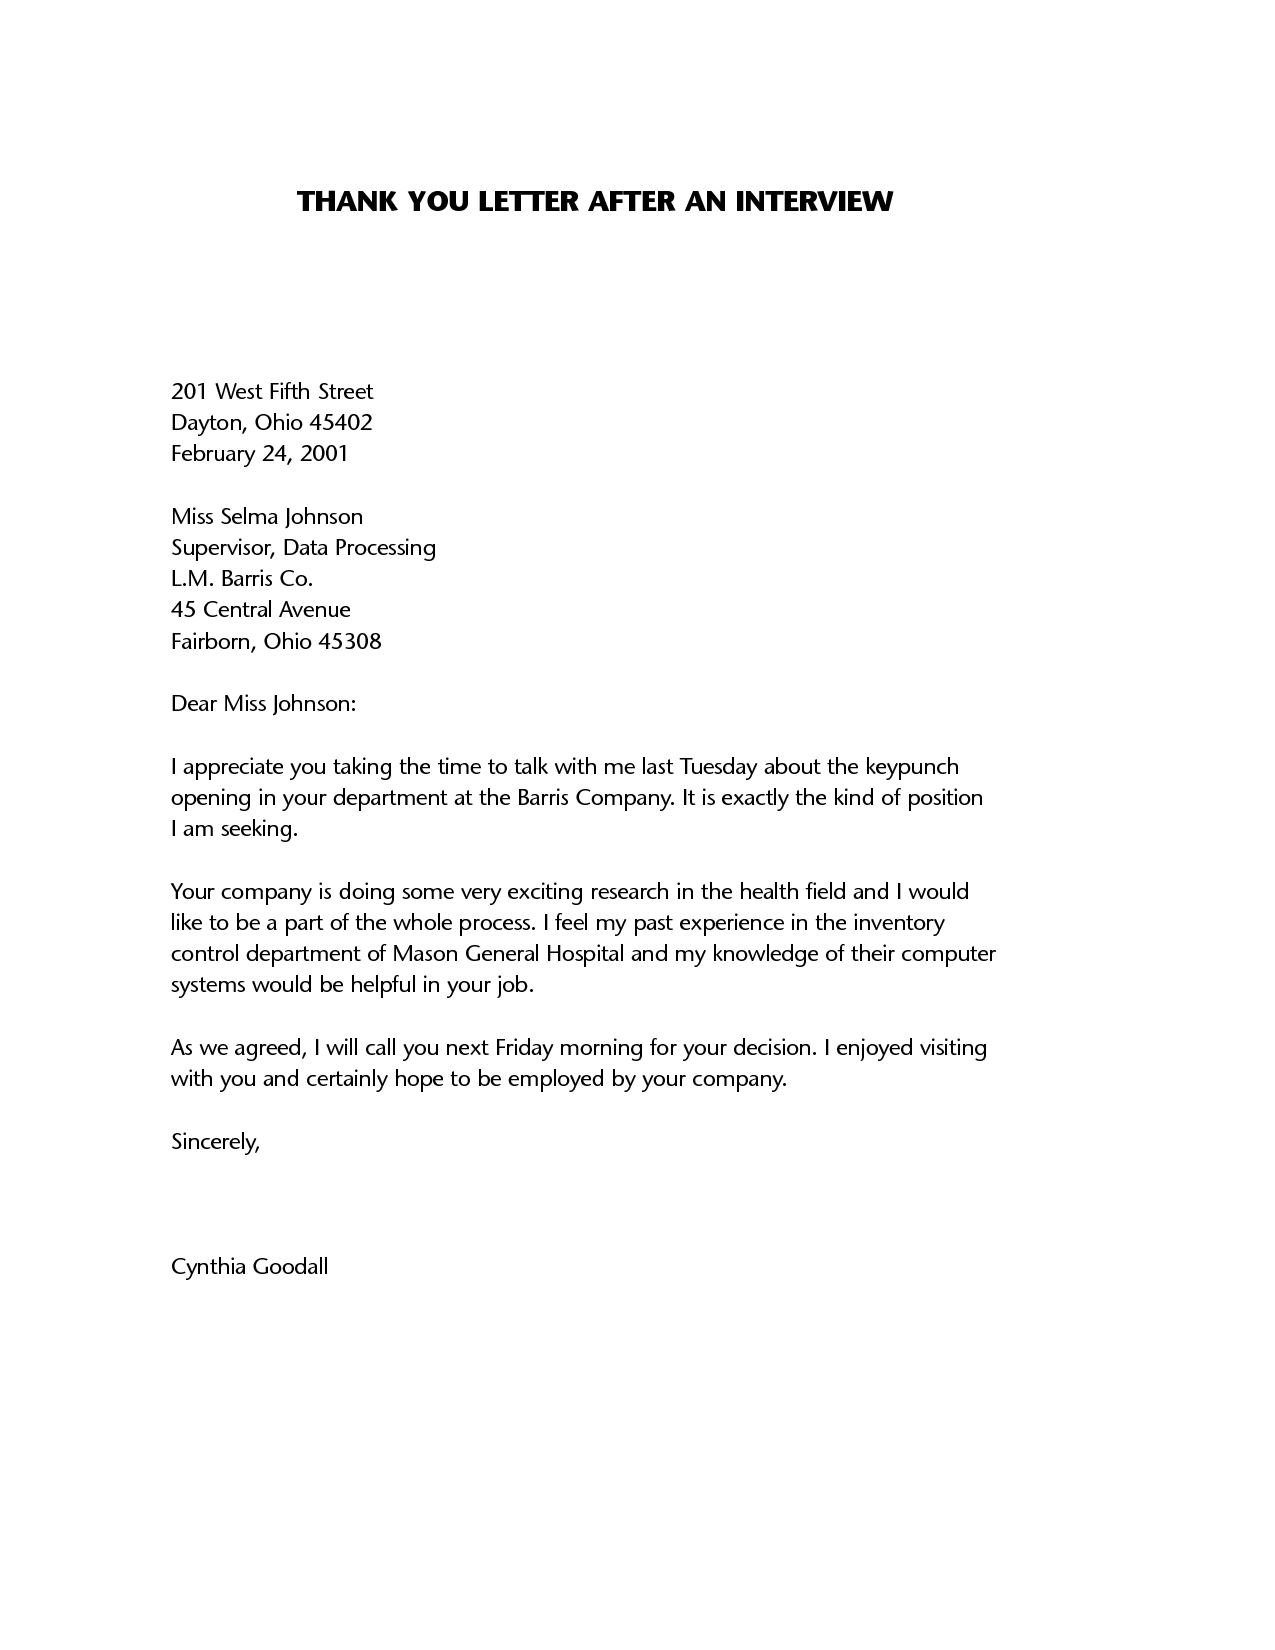 Thank You Letters After Interview Bbq Grill Recipes Letter Teacher